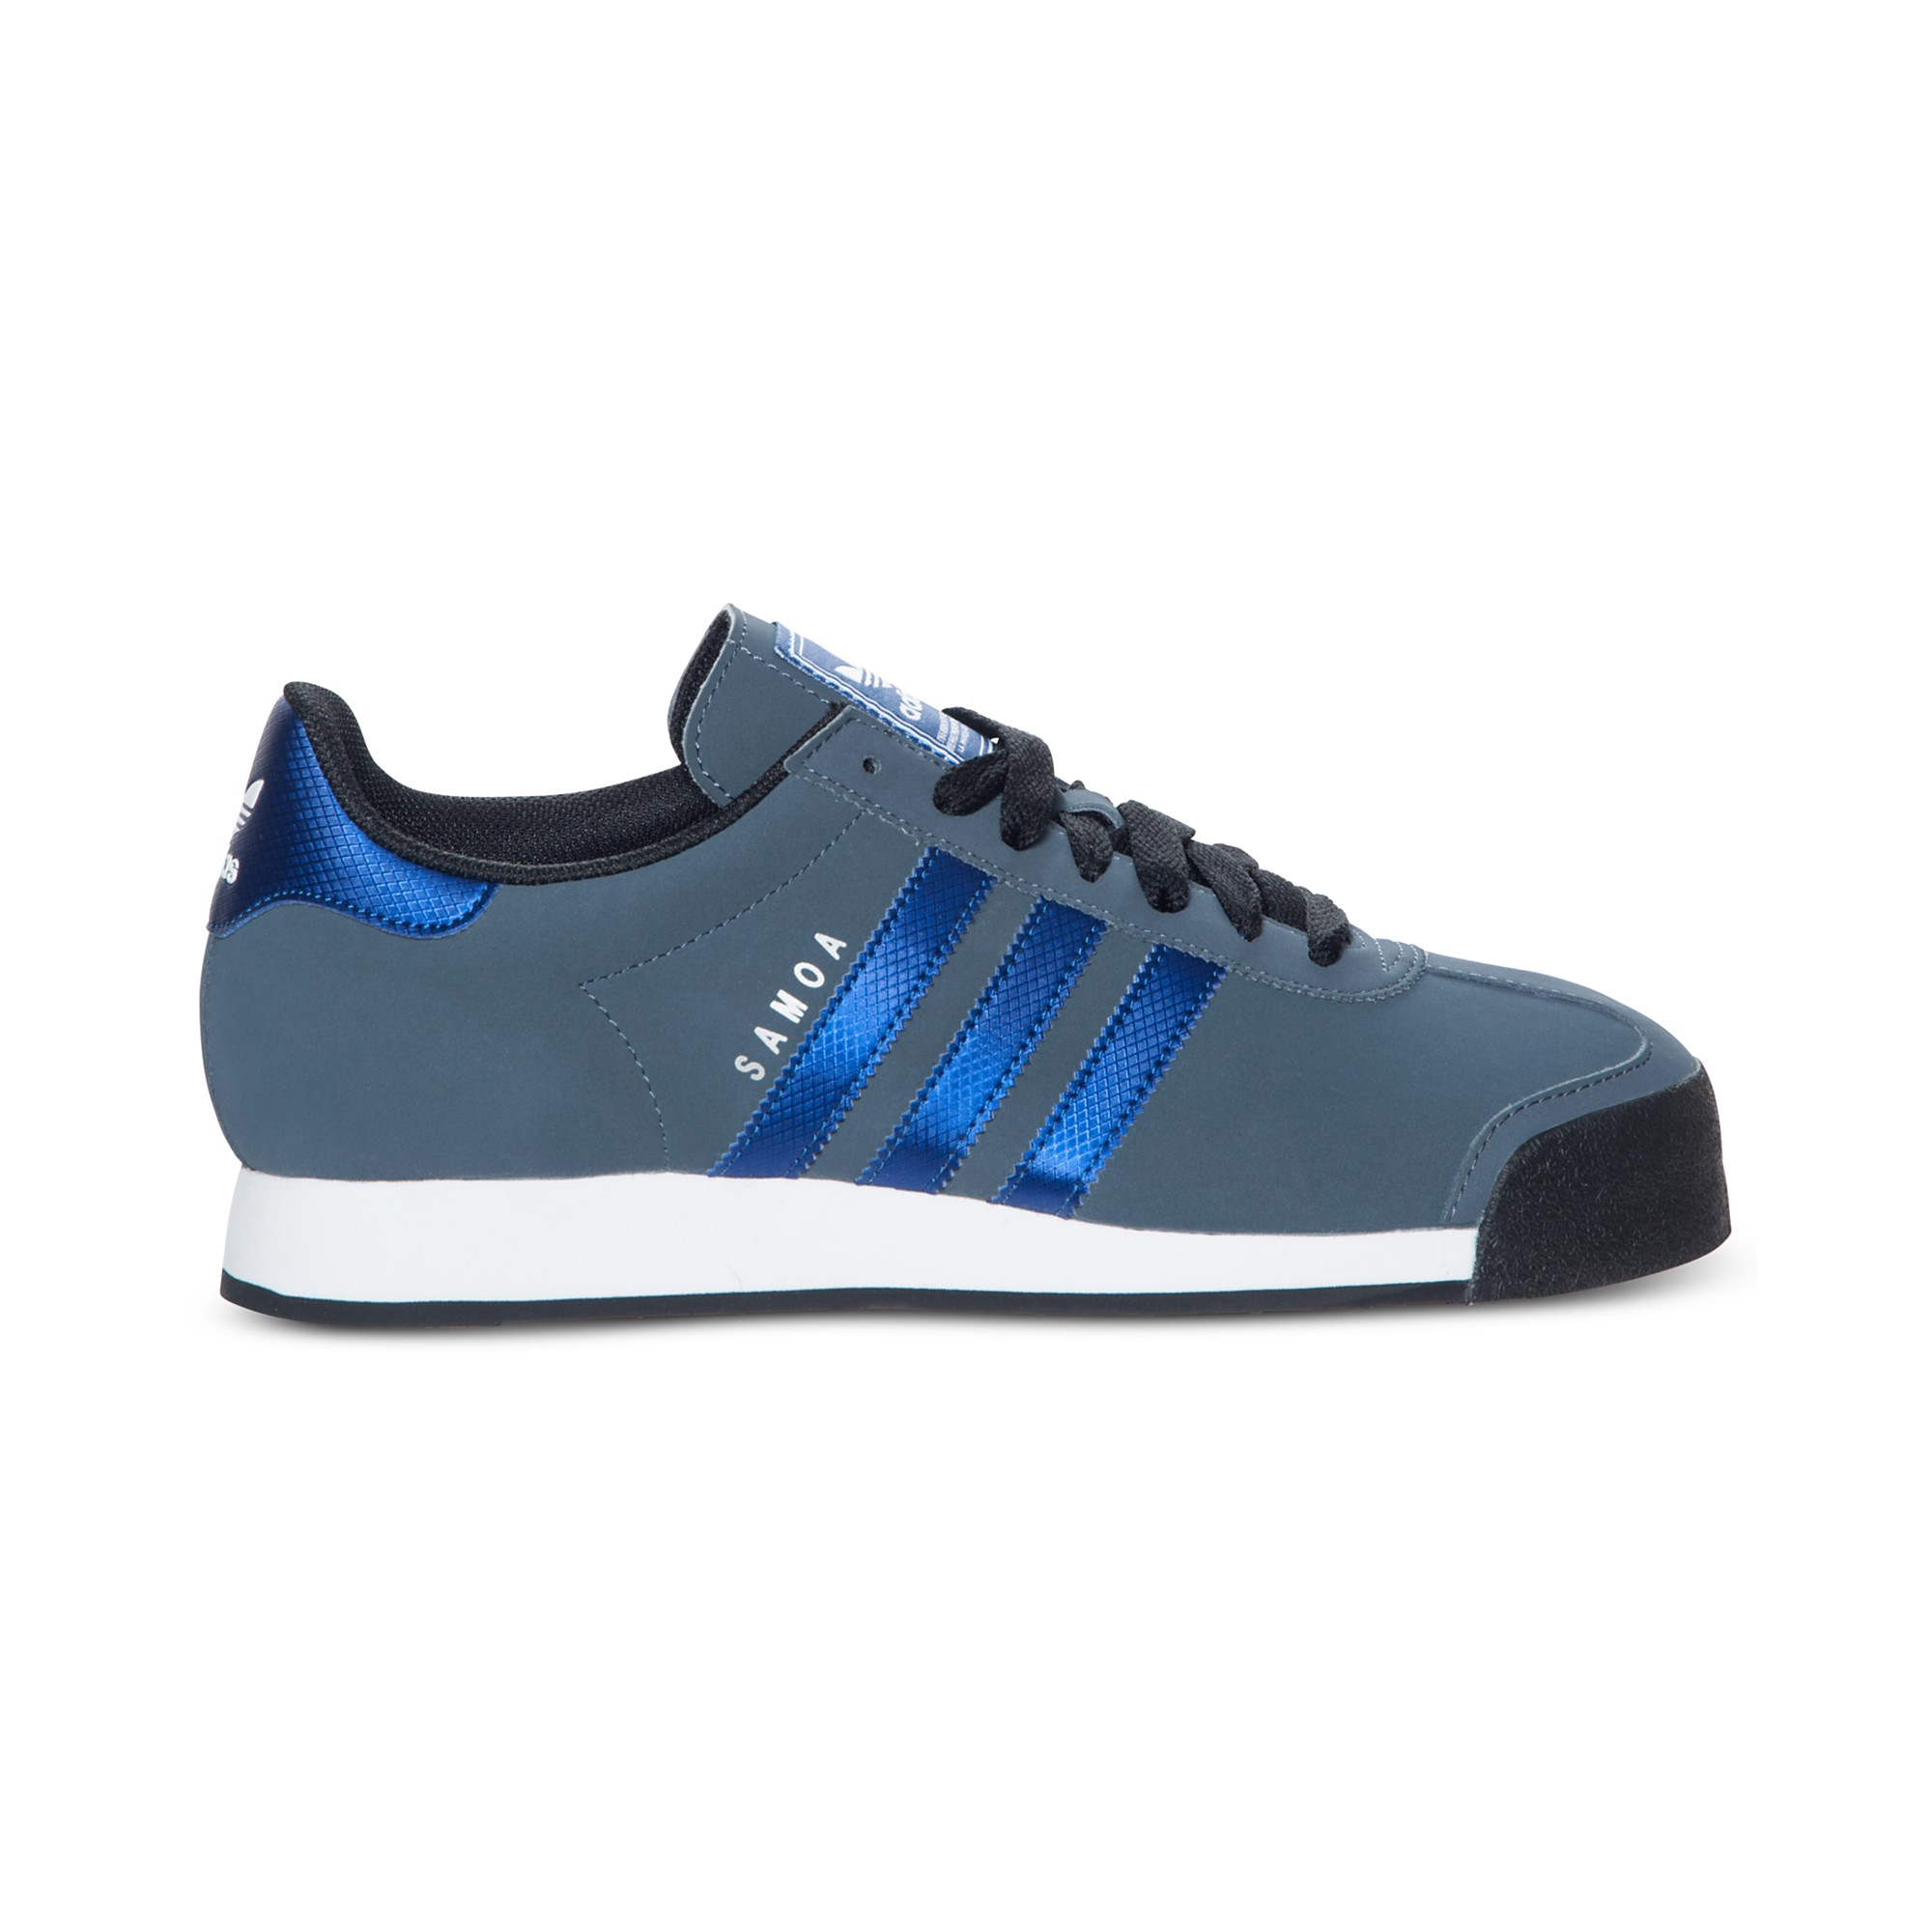 adidas Samoa Sneakers in Blue for Men - Lyst